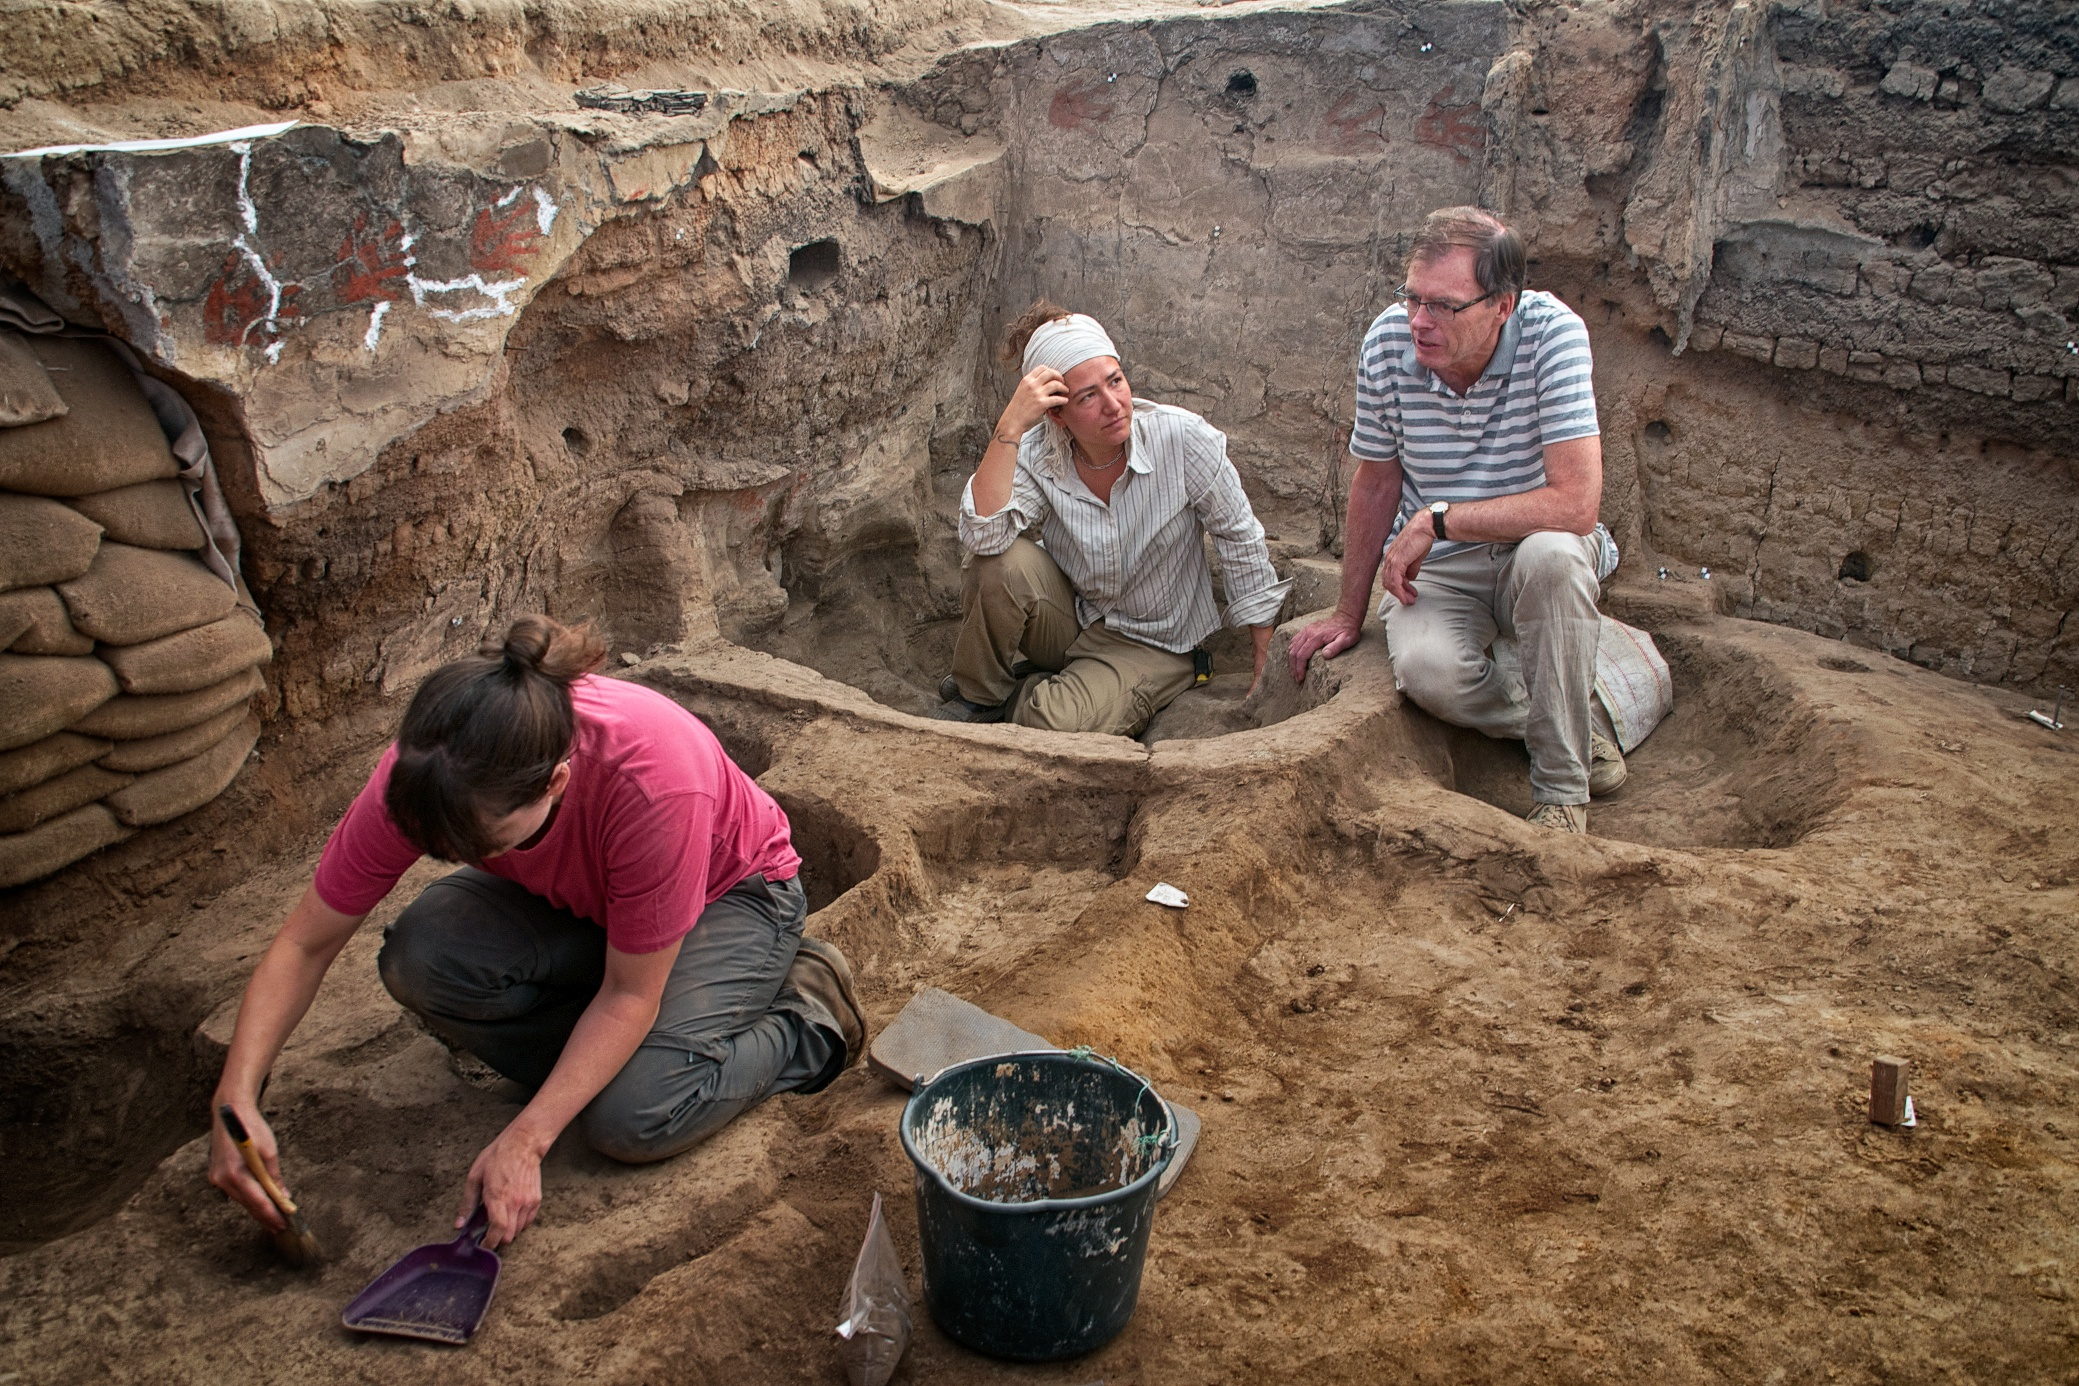 Burcu and Ian discuss excavation plans in Building 77 (North Area) during the last days of the 2013 season. In the foreground, Renata cleans her area for a photo.